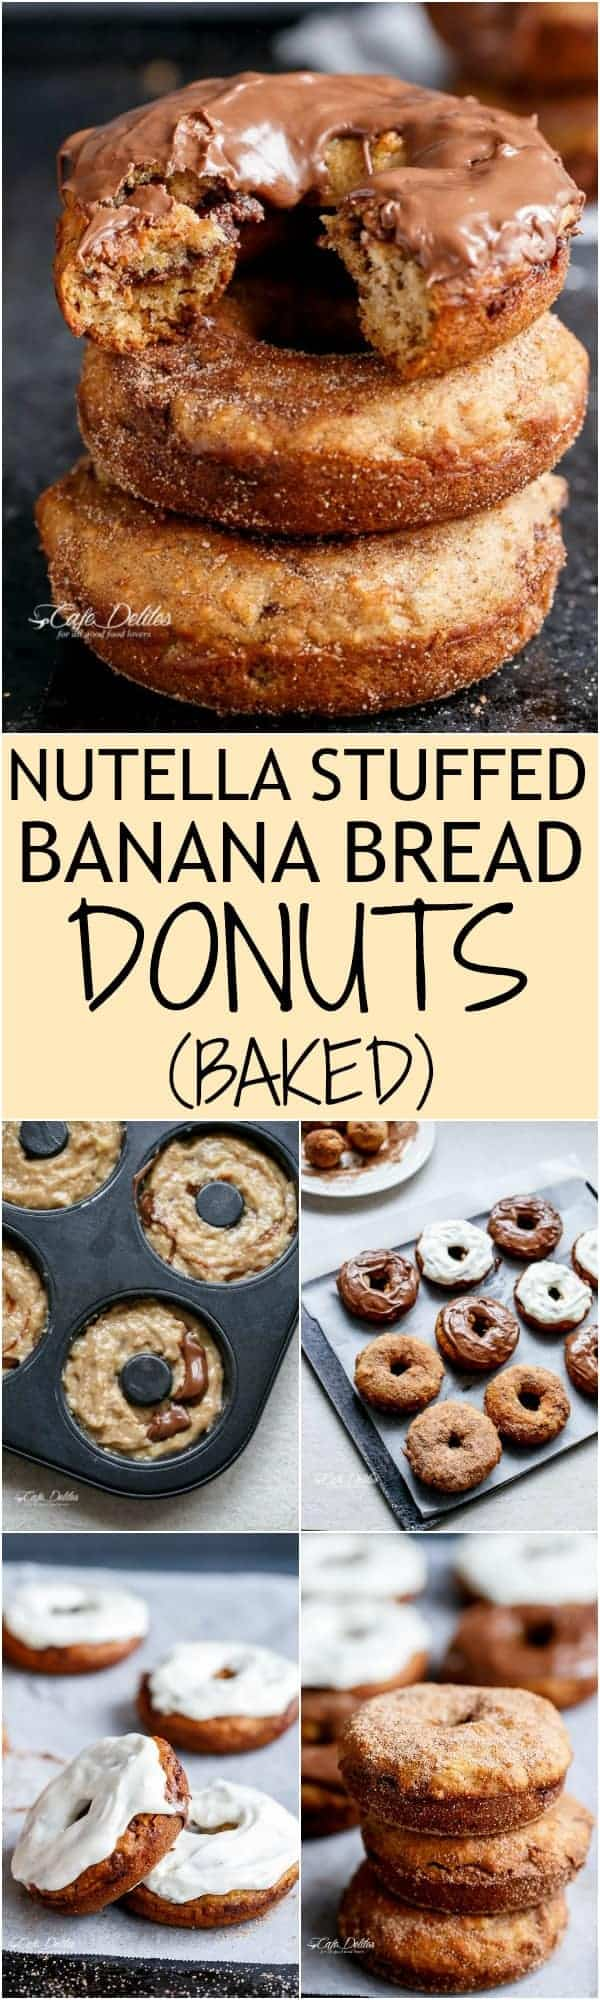 Nutella-Stuffed-Baked-Banana-Bread-Donuts | HTTP://CAFEDELITES.COM